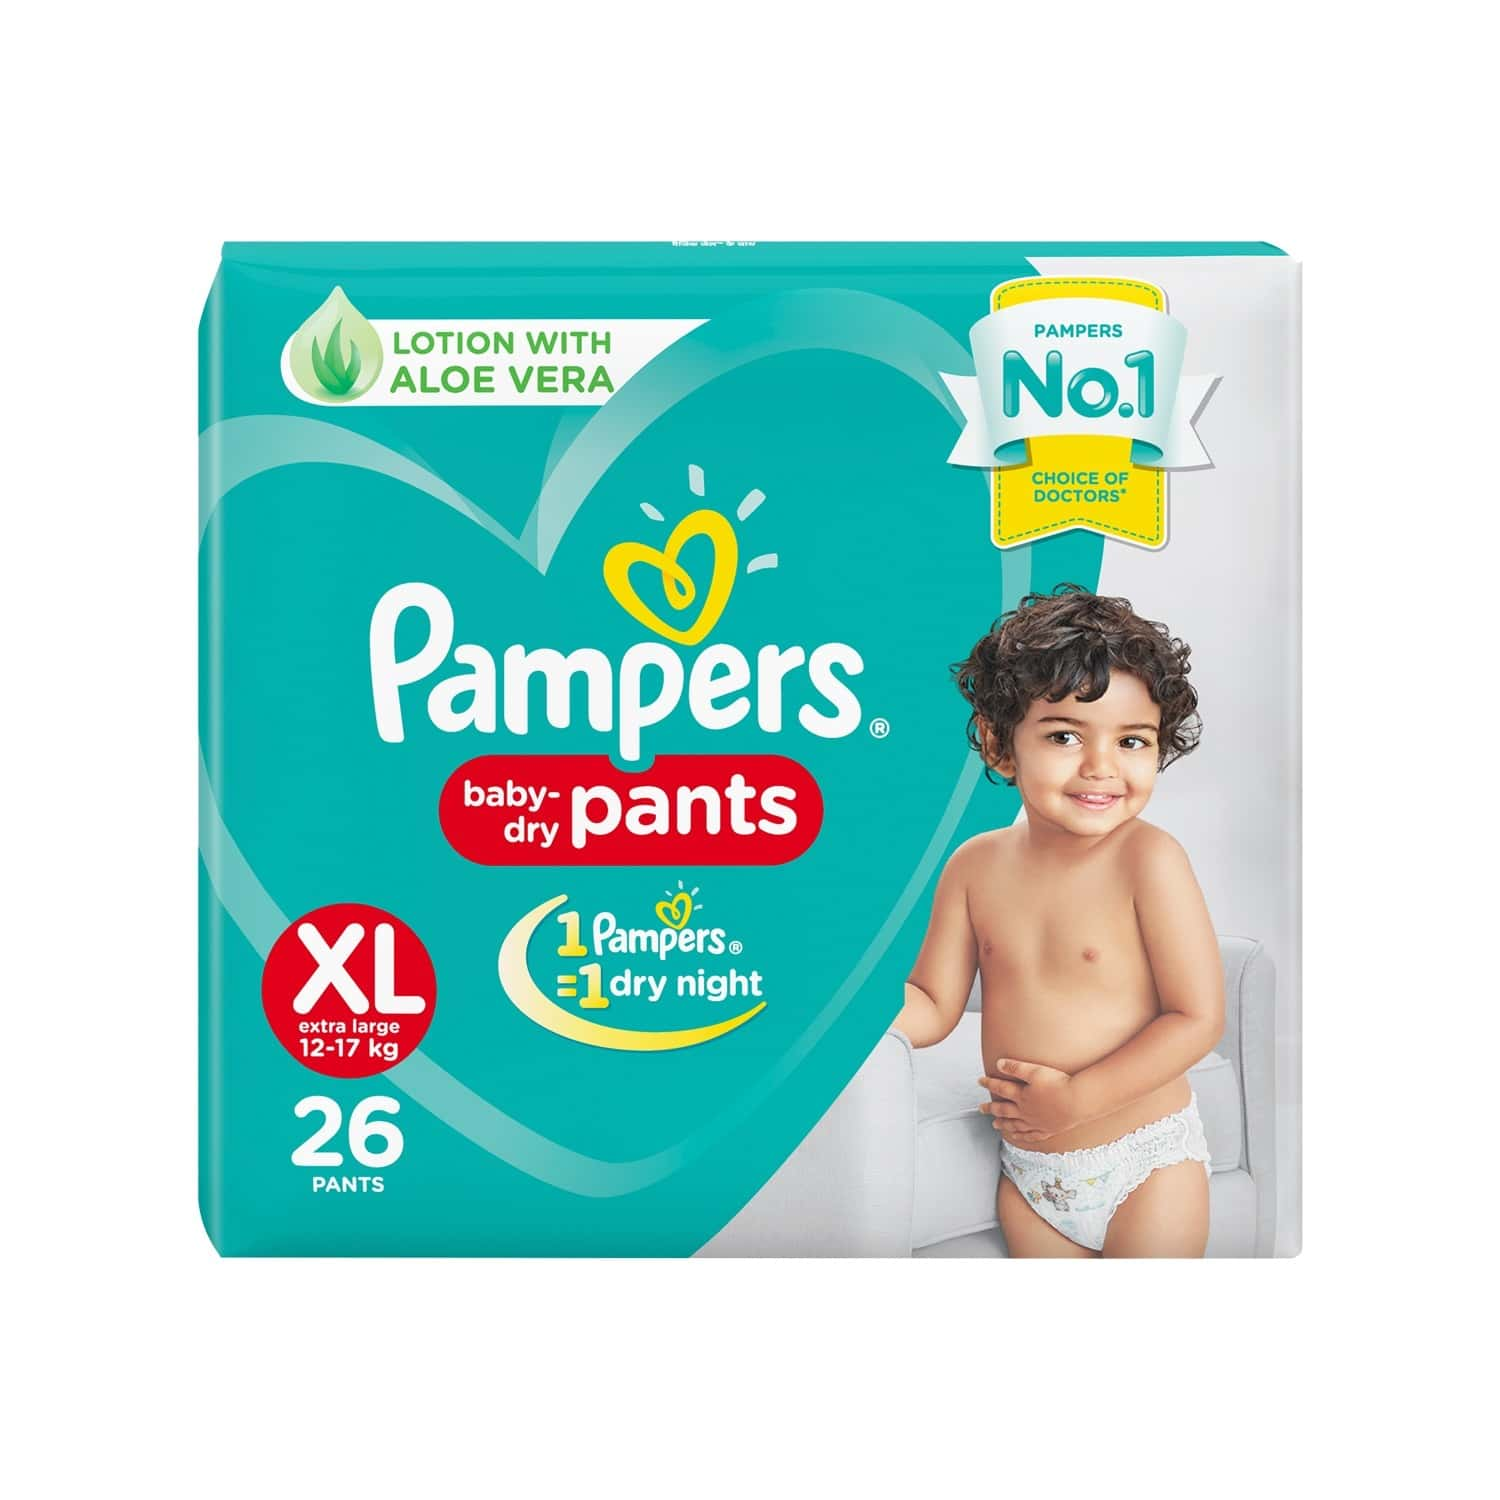 Pampers New X-large Size Diapers Pants, 26 Count